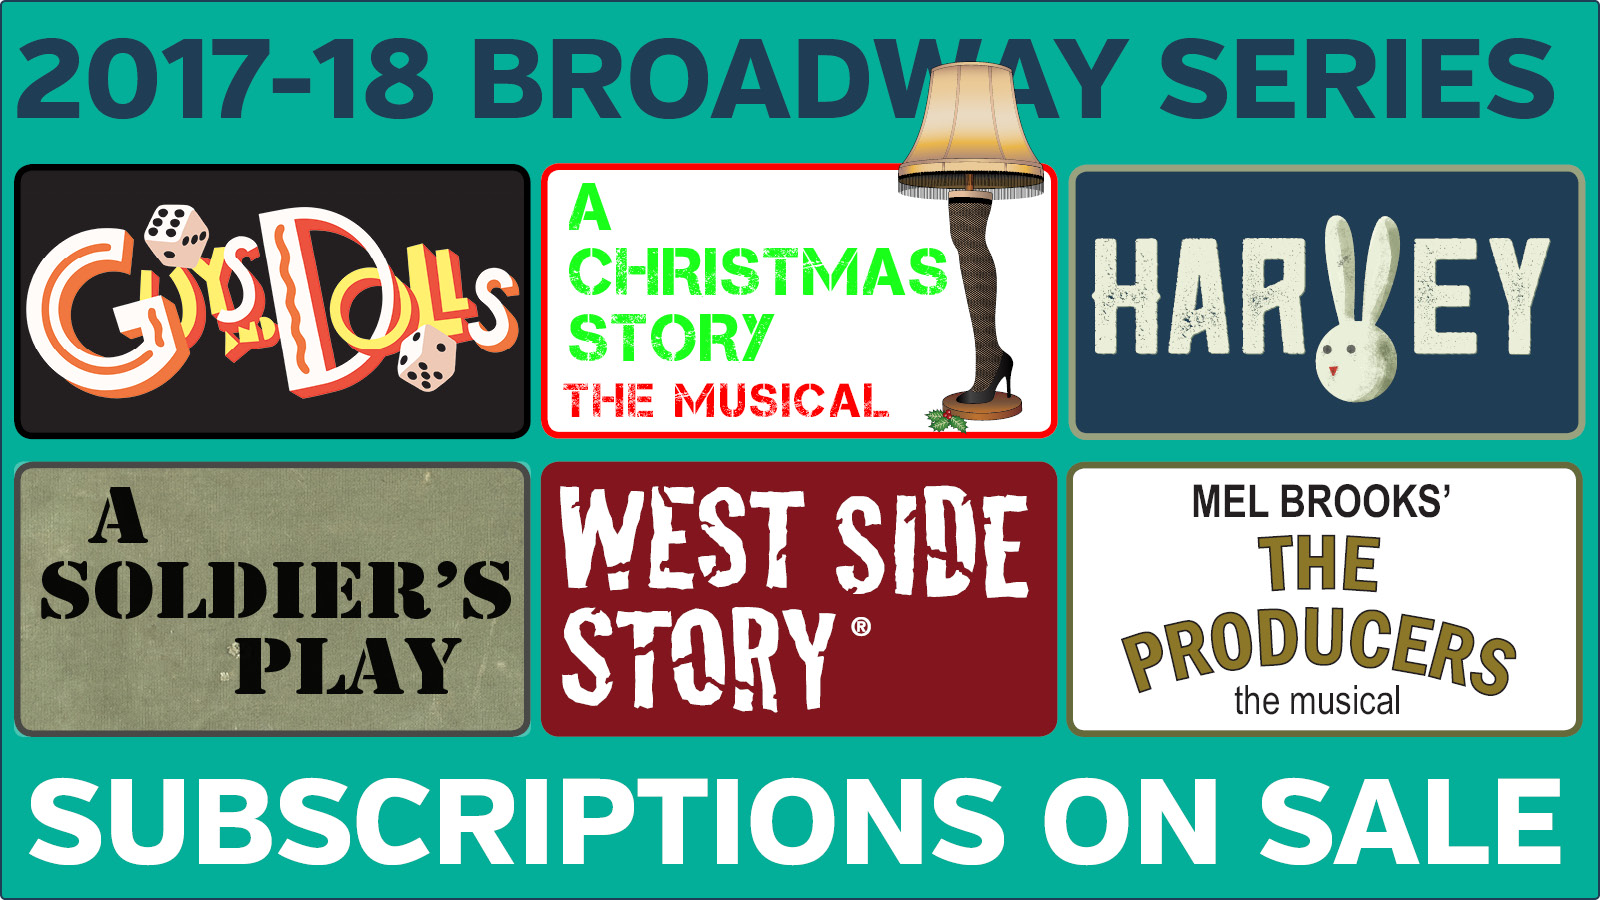 Subscriptions On Sale Now for 2017-18 Broadway Series